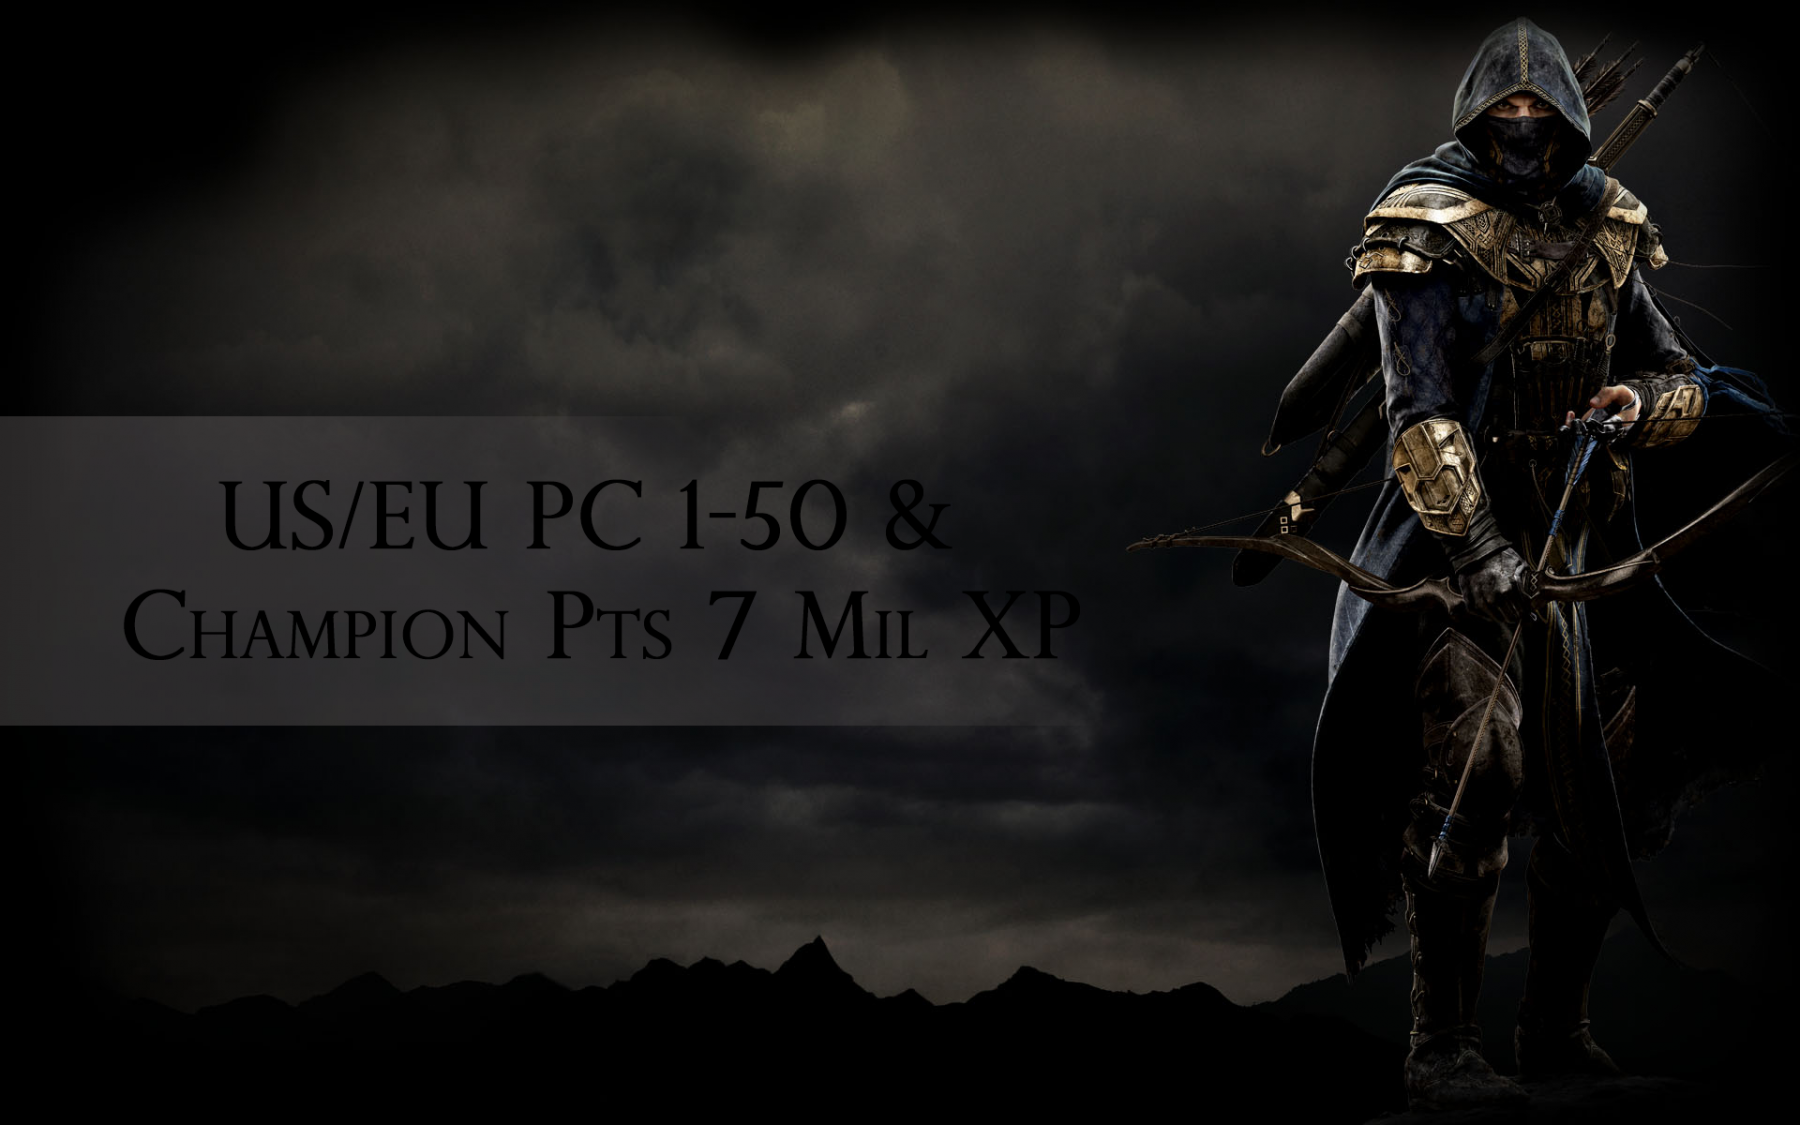 US/EU PC 1-50 & Champion Pts 7 Mil XP LeBoosterinho - e2p.com